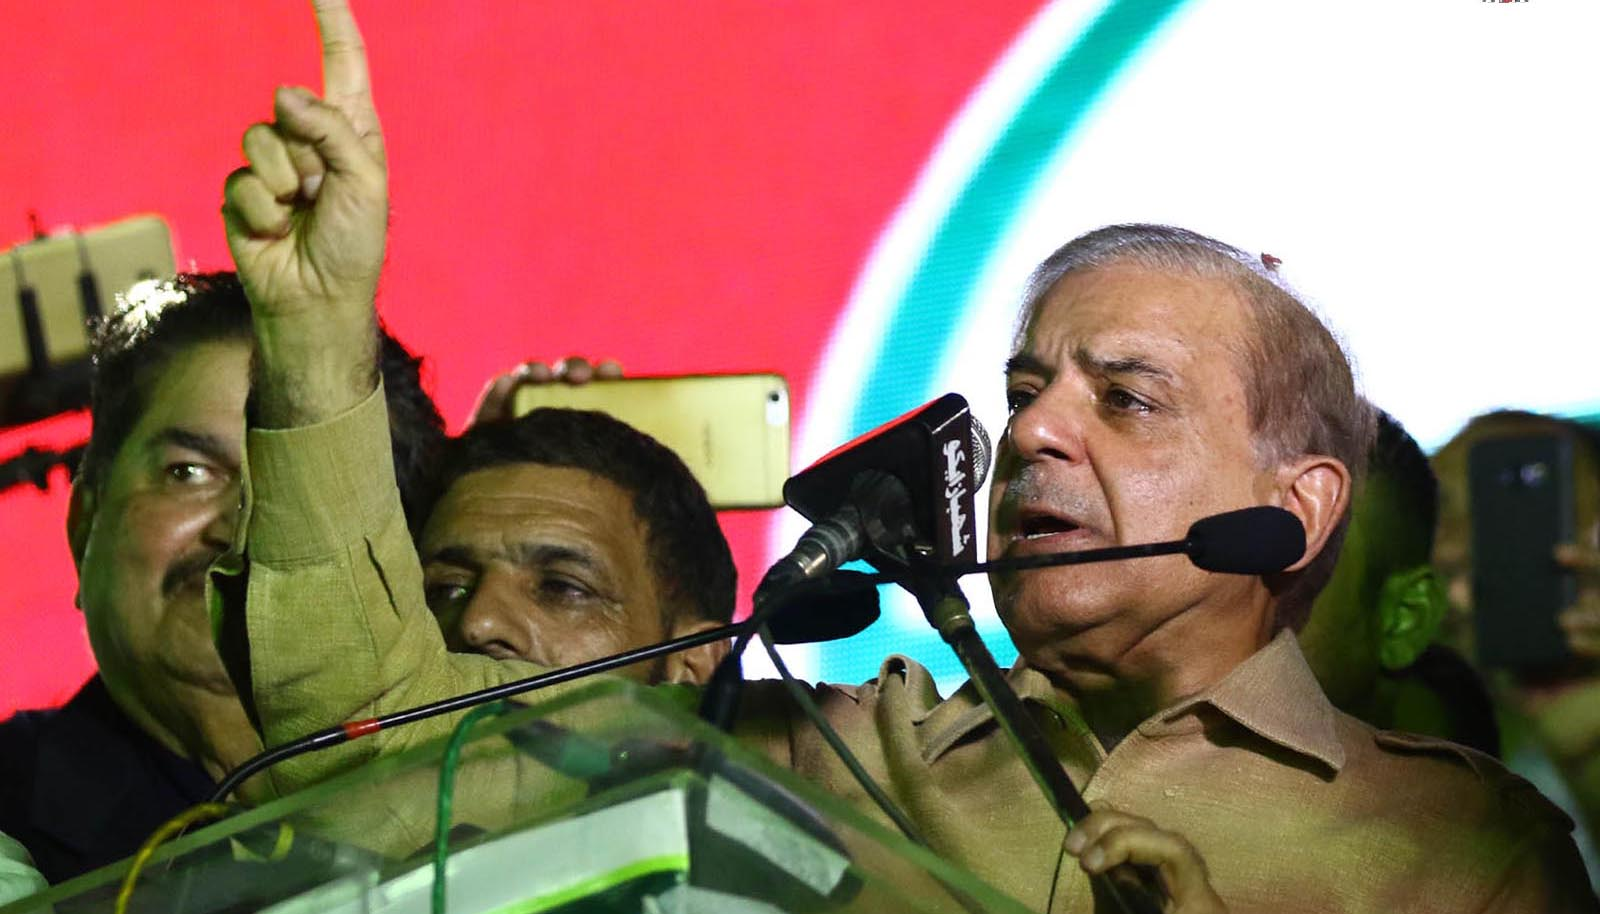 Pakistan Muslim League-Nawaz president and former Chief Minister of Punjab, Shehbaz Sharif addressing party workers in Karachi. Photo: INP